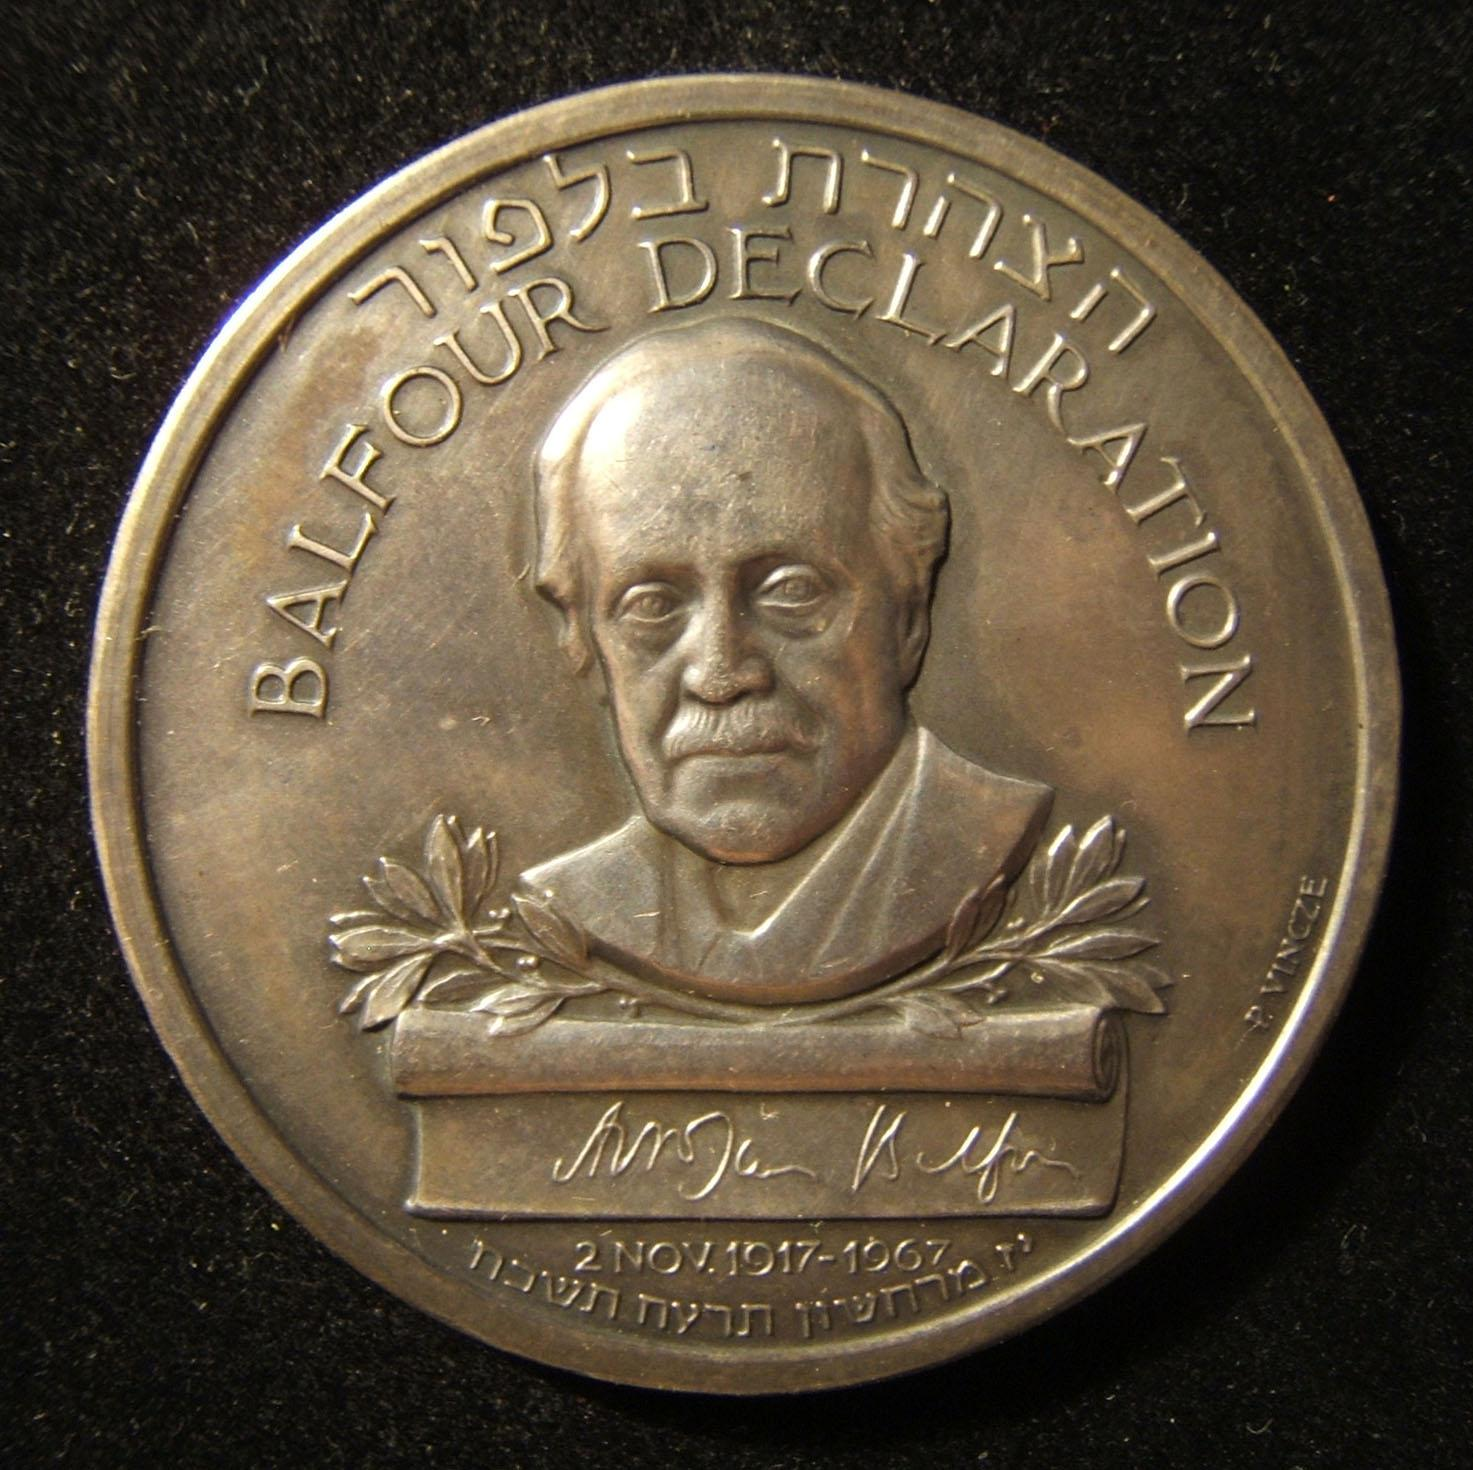 Israel/Great Britain: 50th Anniv. Balfour Declaration silver medal by Vincze, 1967